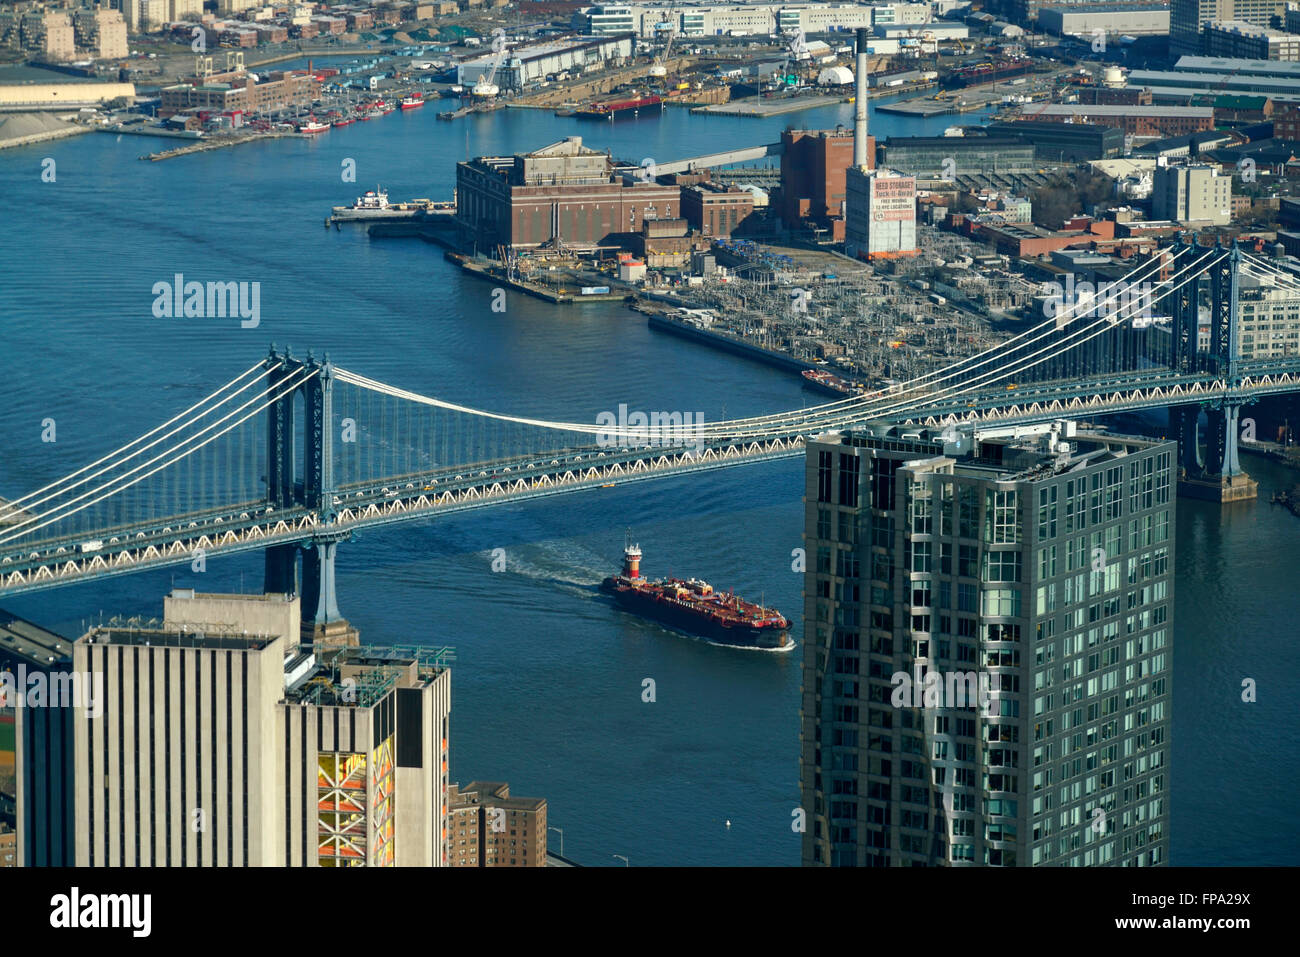 Aerial view of a ship in East River pass under Manhattan Bridge with borough of Brooklyn in background - Stock Image